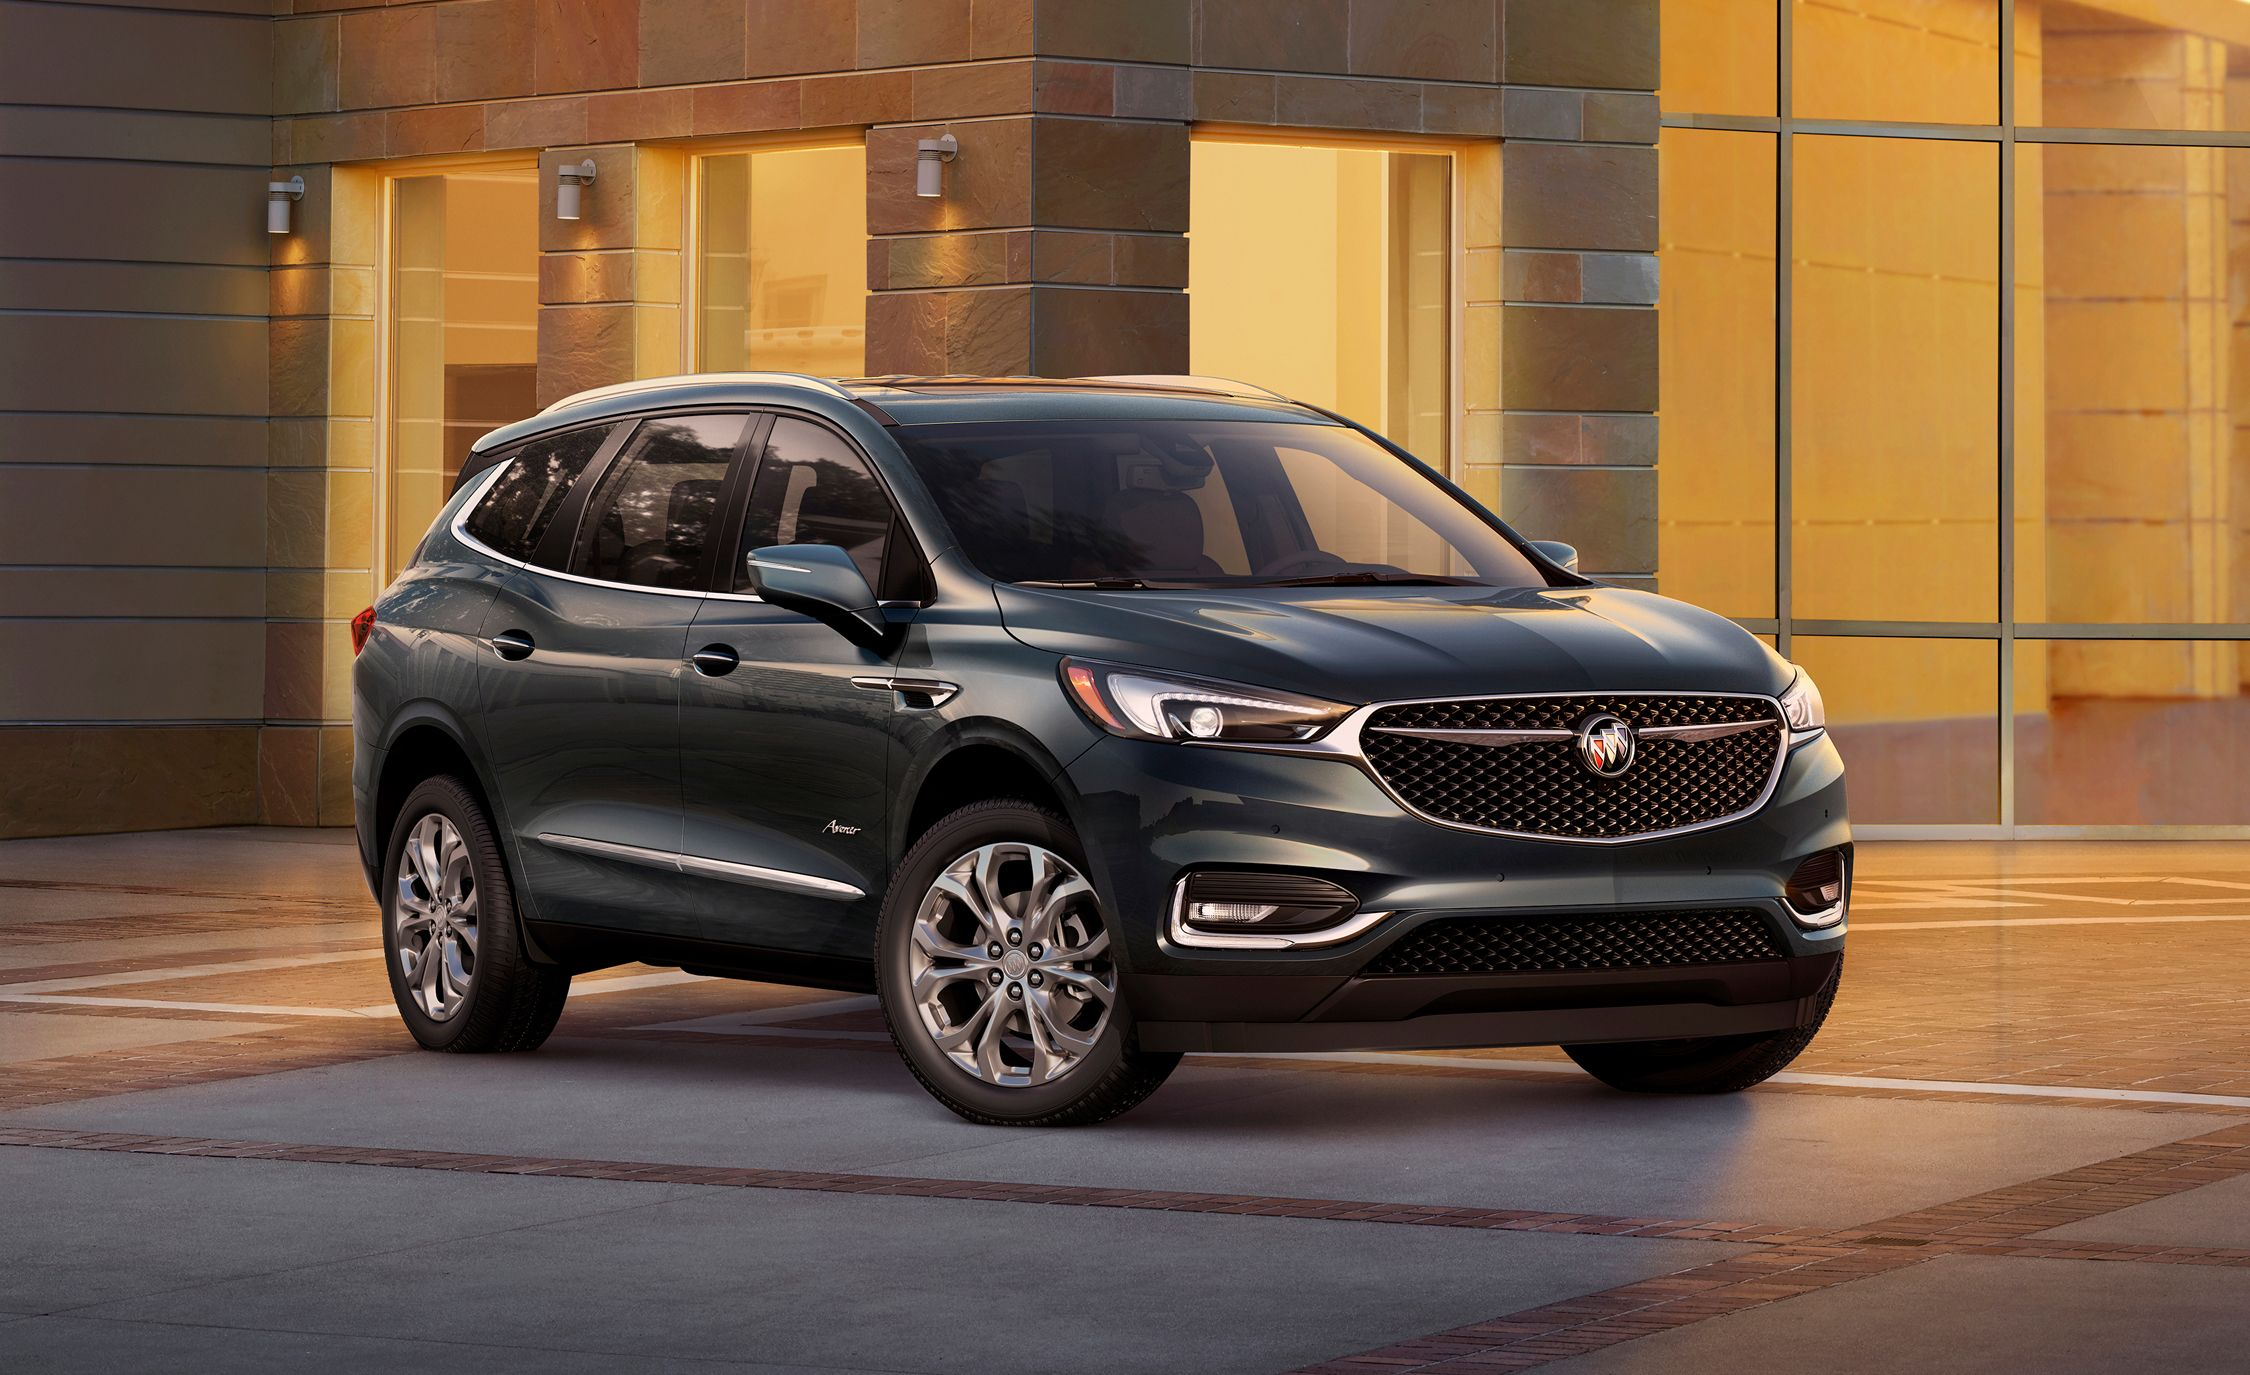 2019 buick enclave reviews buick enclave price, photos, and specs